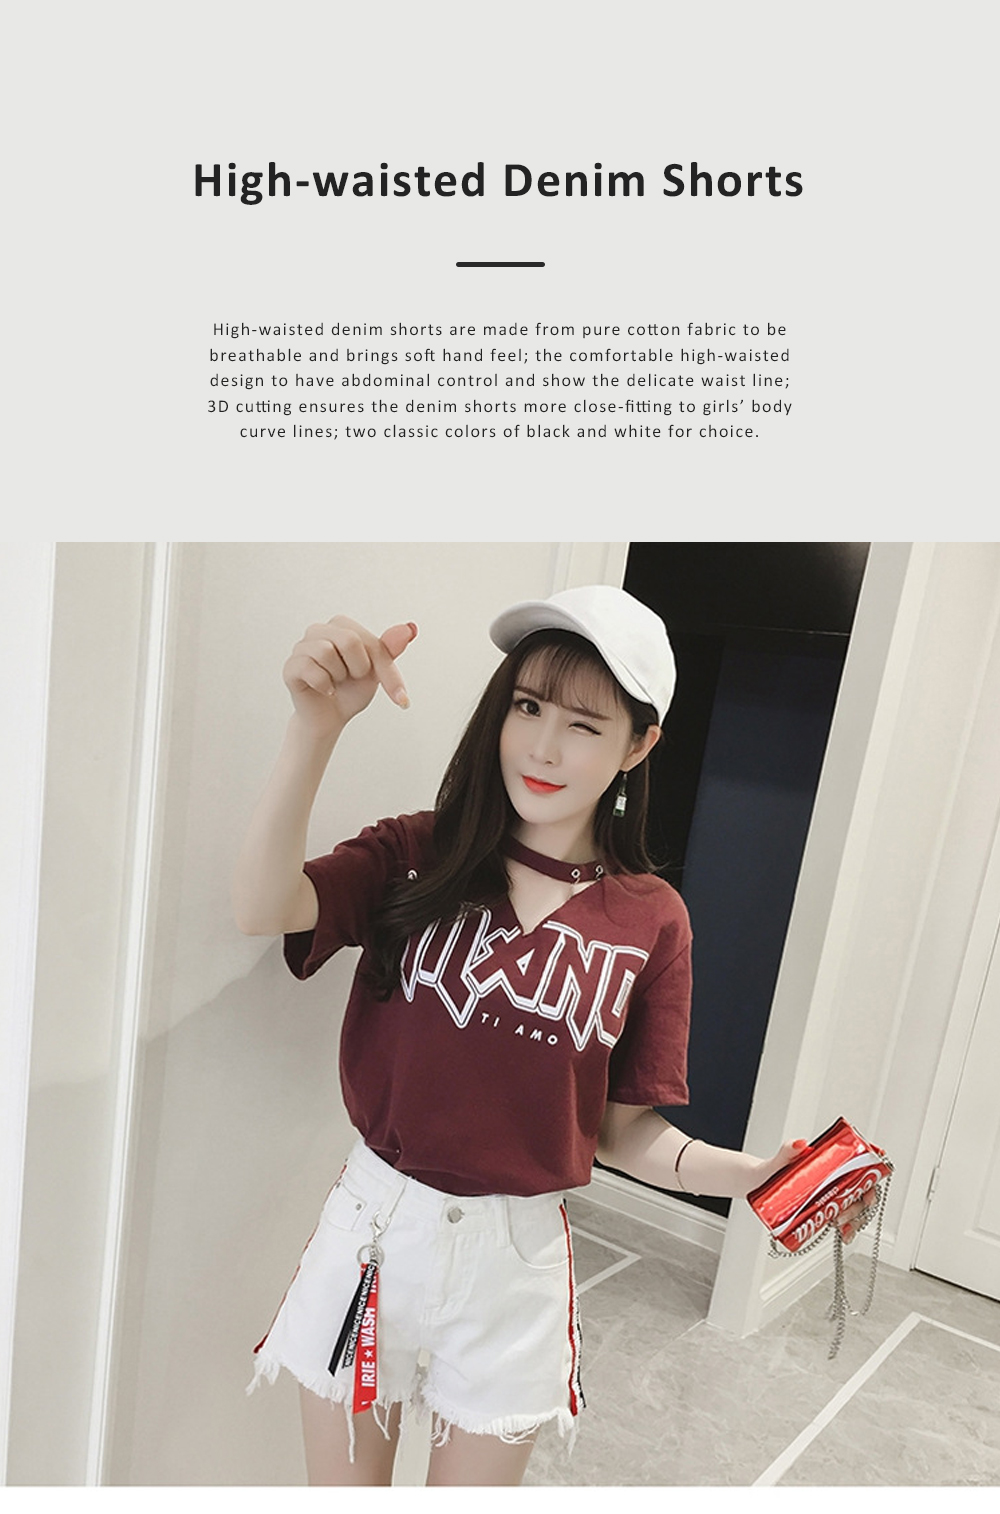 2019 High-waisted Denim Shorts Jeans Pants for Girl Students Wear Summer Loose Version Short Pants in Pure Black Color or White Color 0